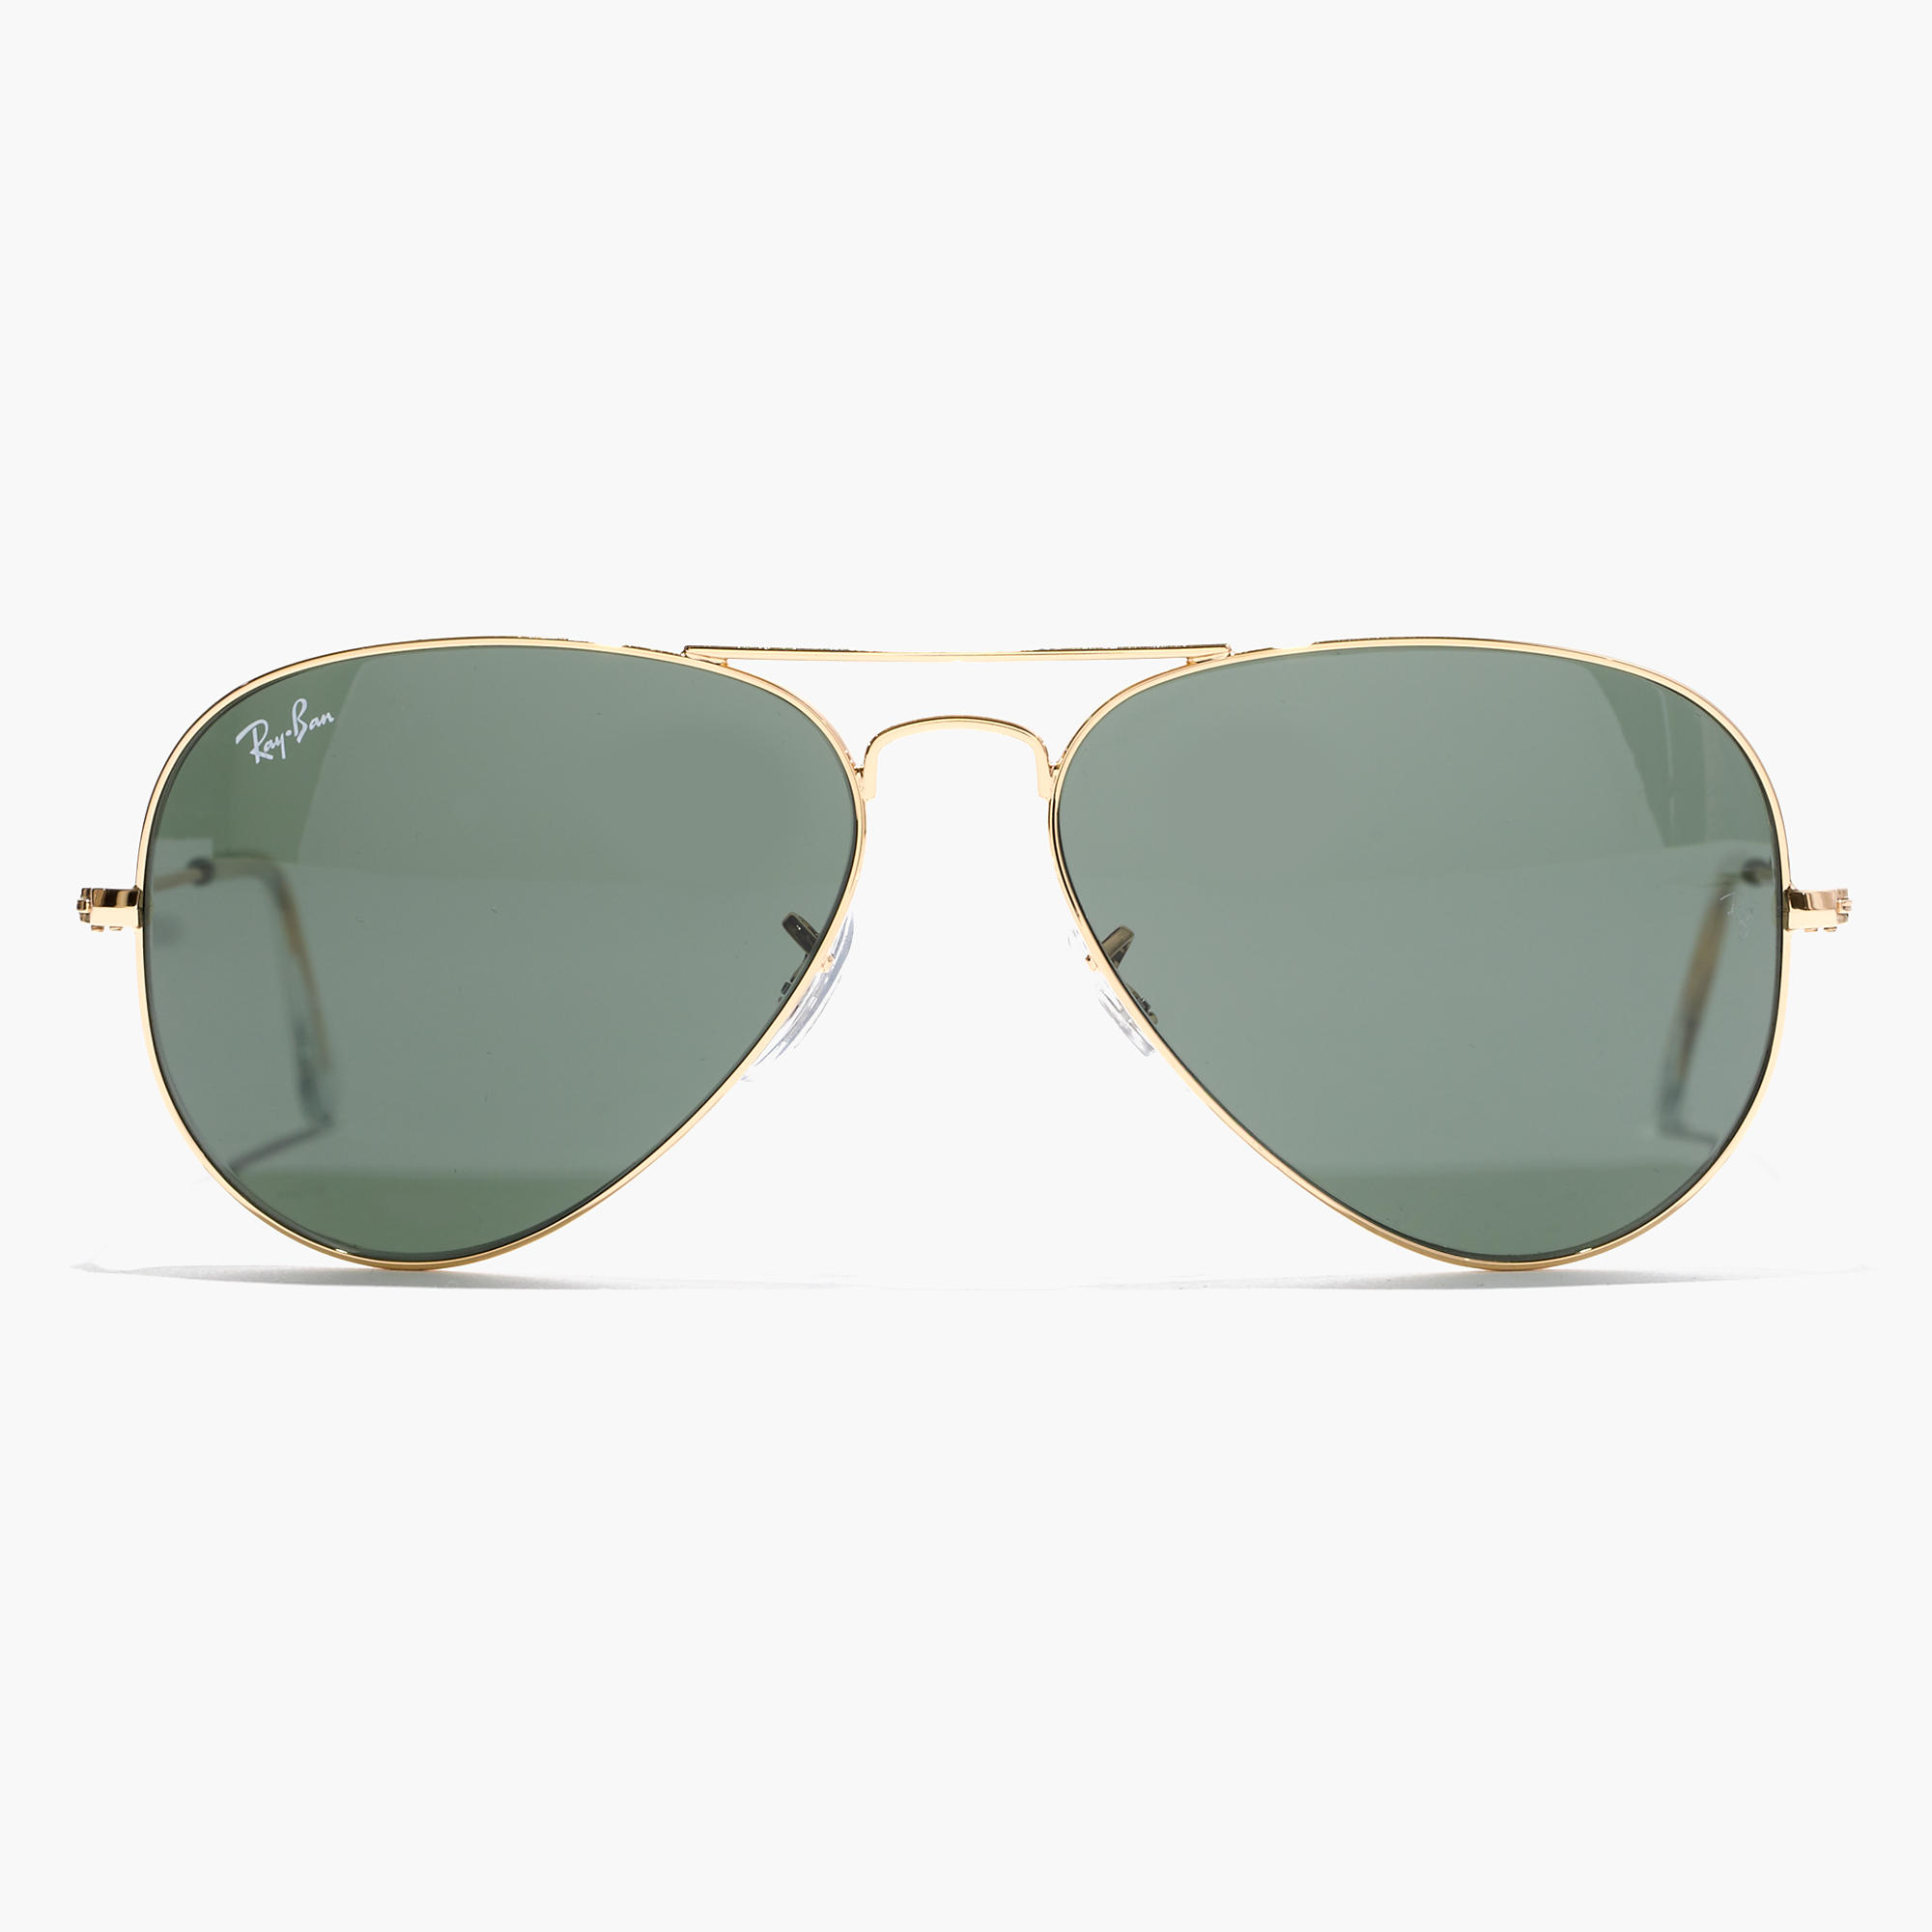 ray ban sunglasses size chart tmhy  chart; ray ban glasses size; _9960066; ray ban庐 aviator sunglasses